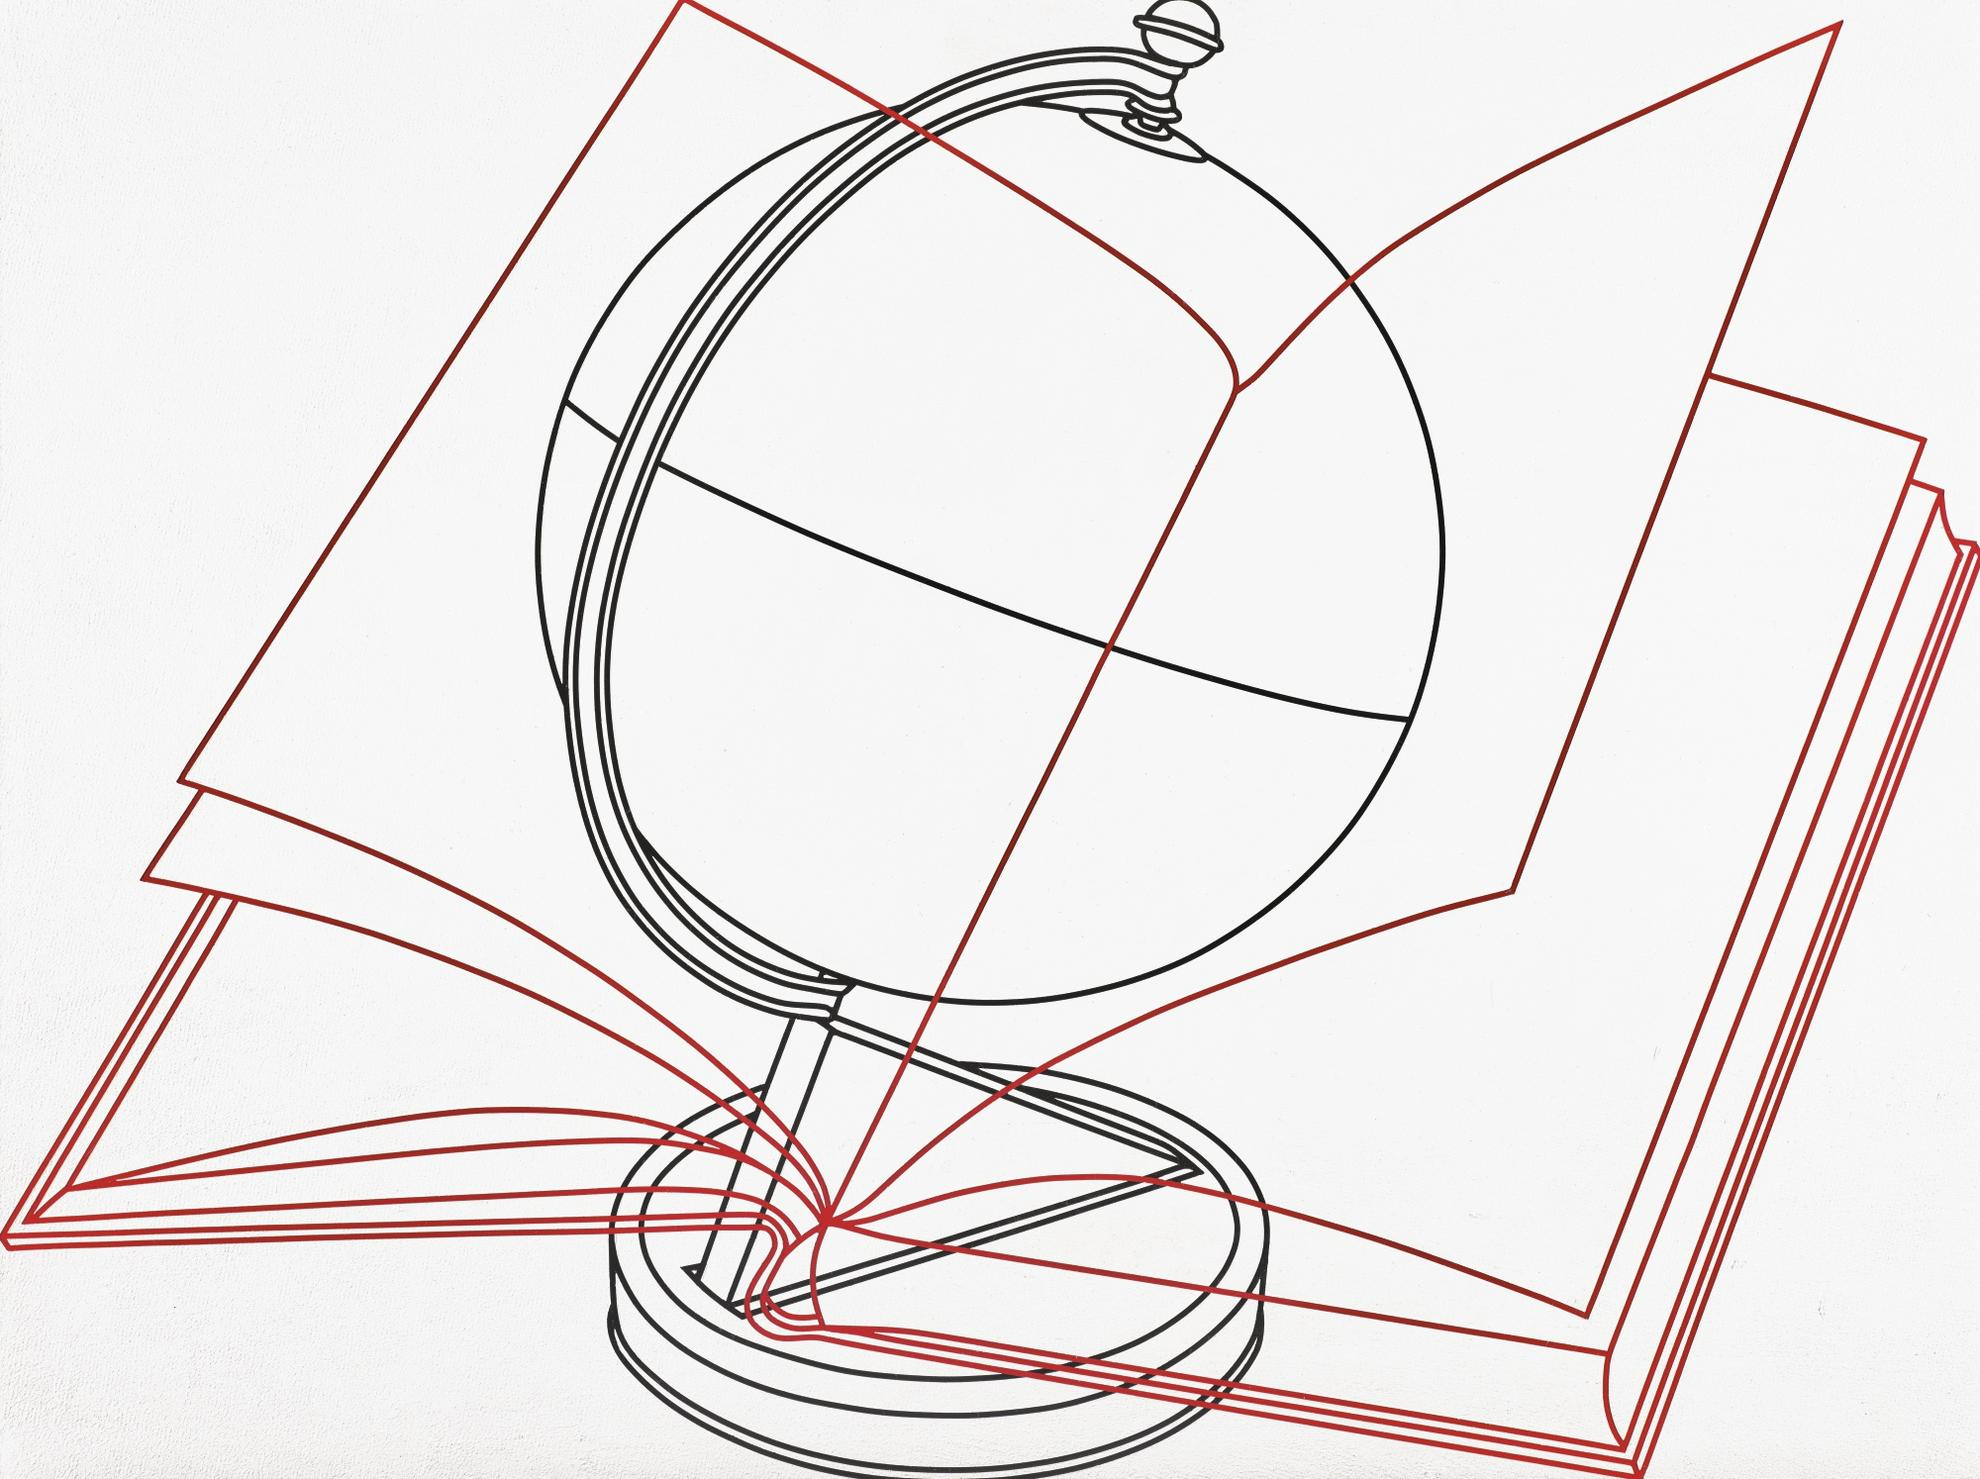 Michael Craig-Martin-Globe And Book-1992